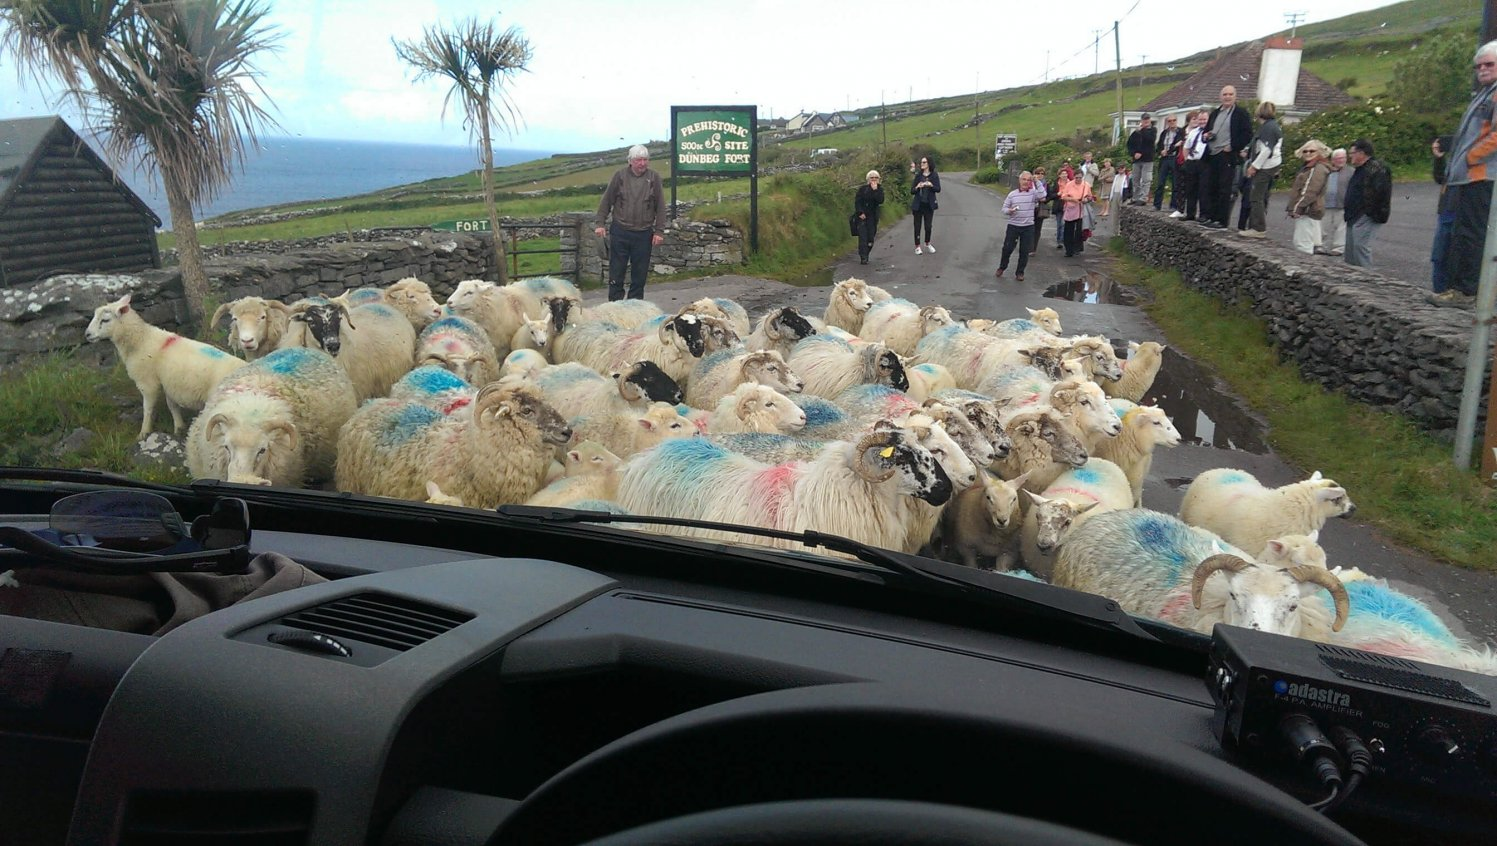 View out over the dashboard of a Vagabond tour vehicle as a group of sheep block a rural road somewhere in Ireland